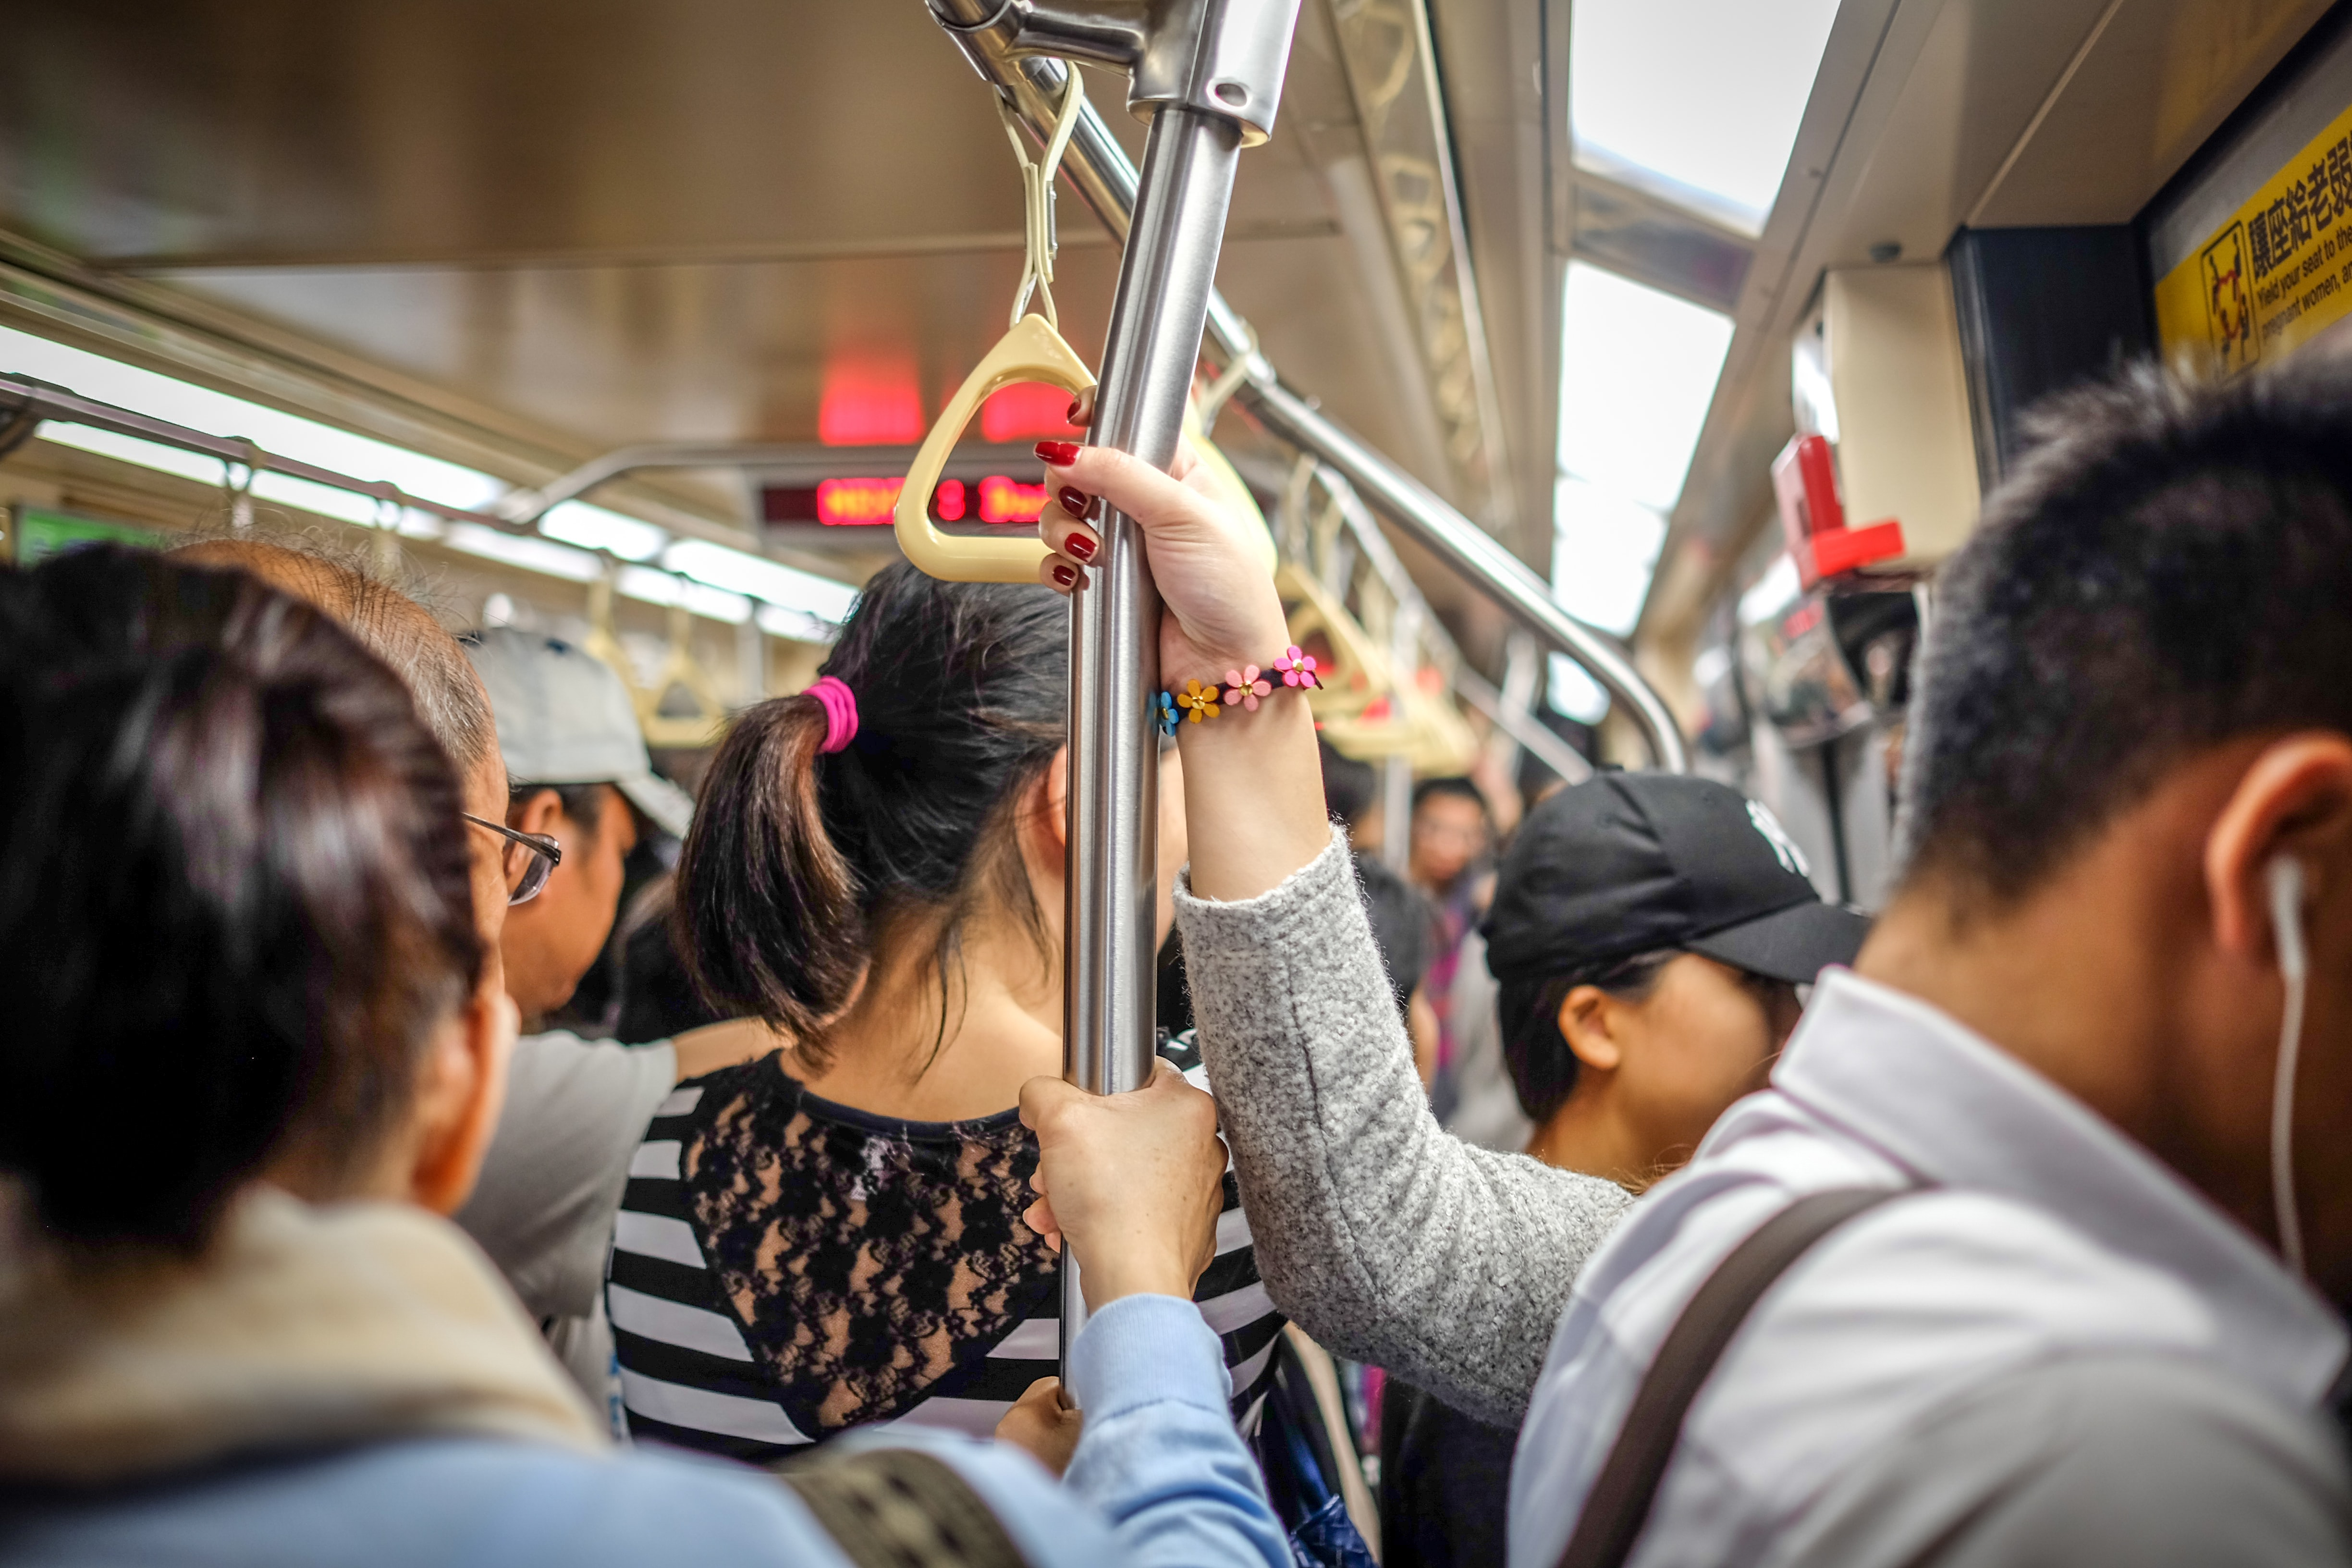 people holding metal pole while standing inside train